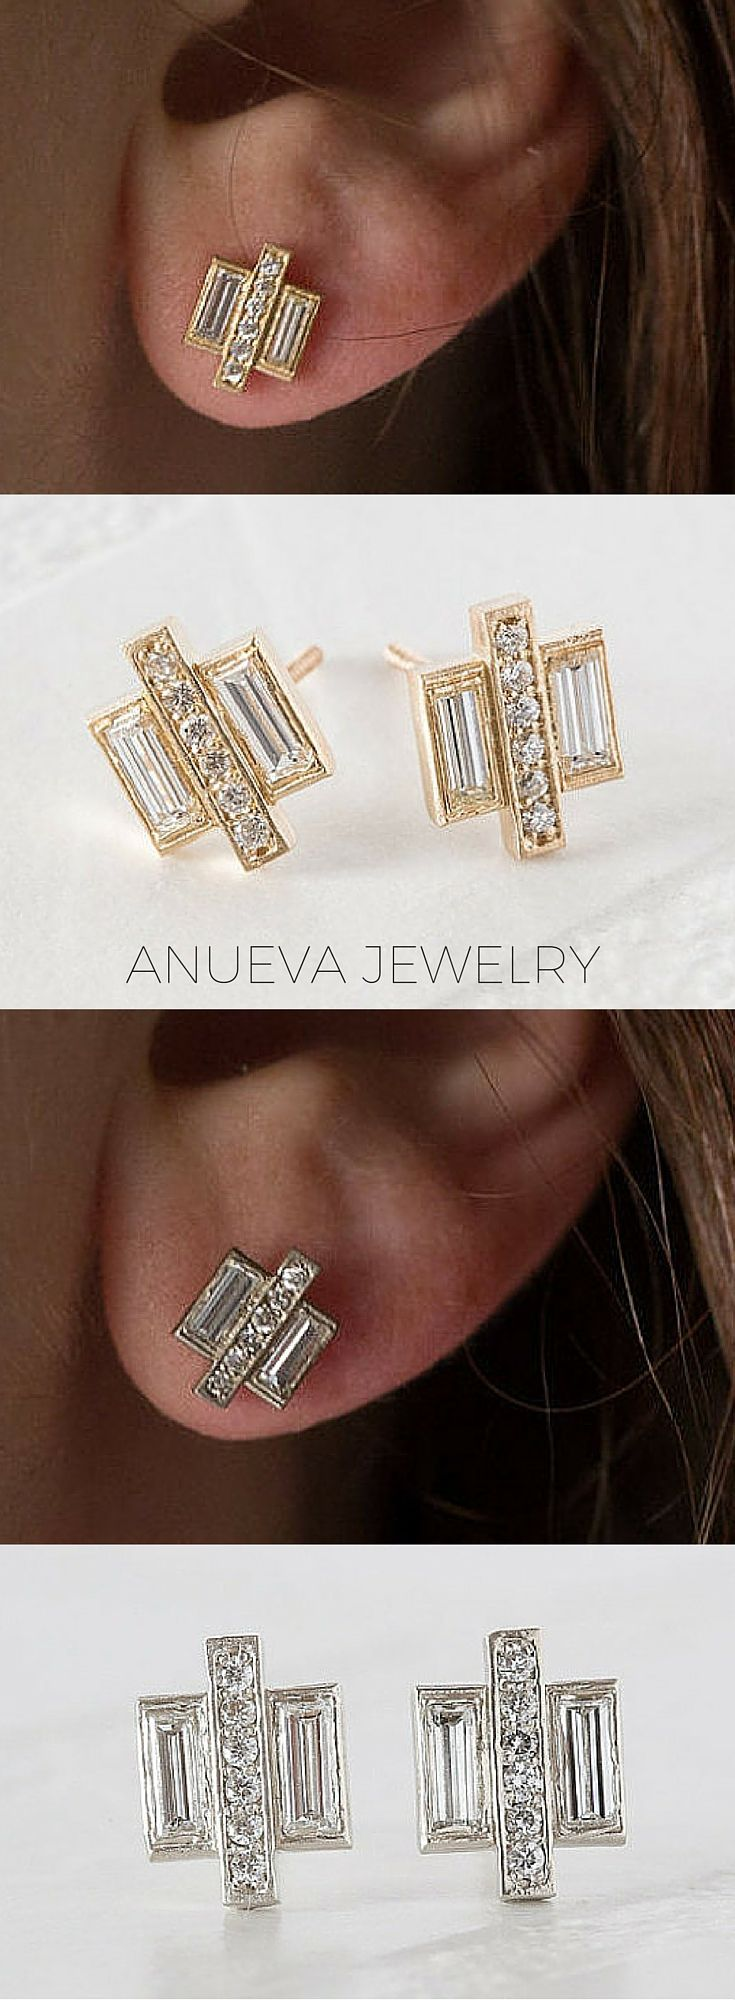 Baguette and pave geometric diamond earrings using recycled gold and recycled diamonds. Modern, edgy earrings by Anueva Jewelry on Etsy.